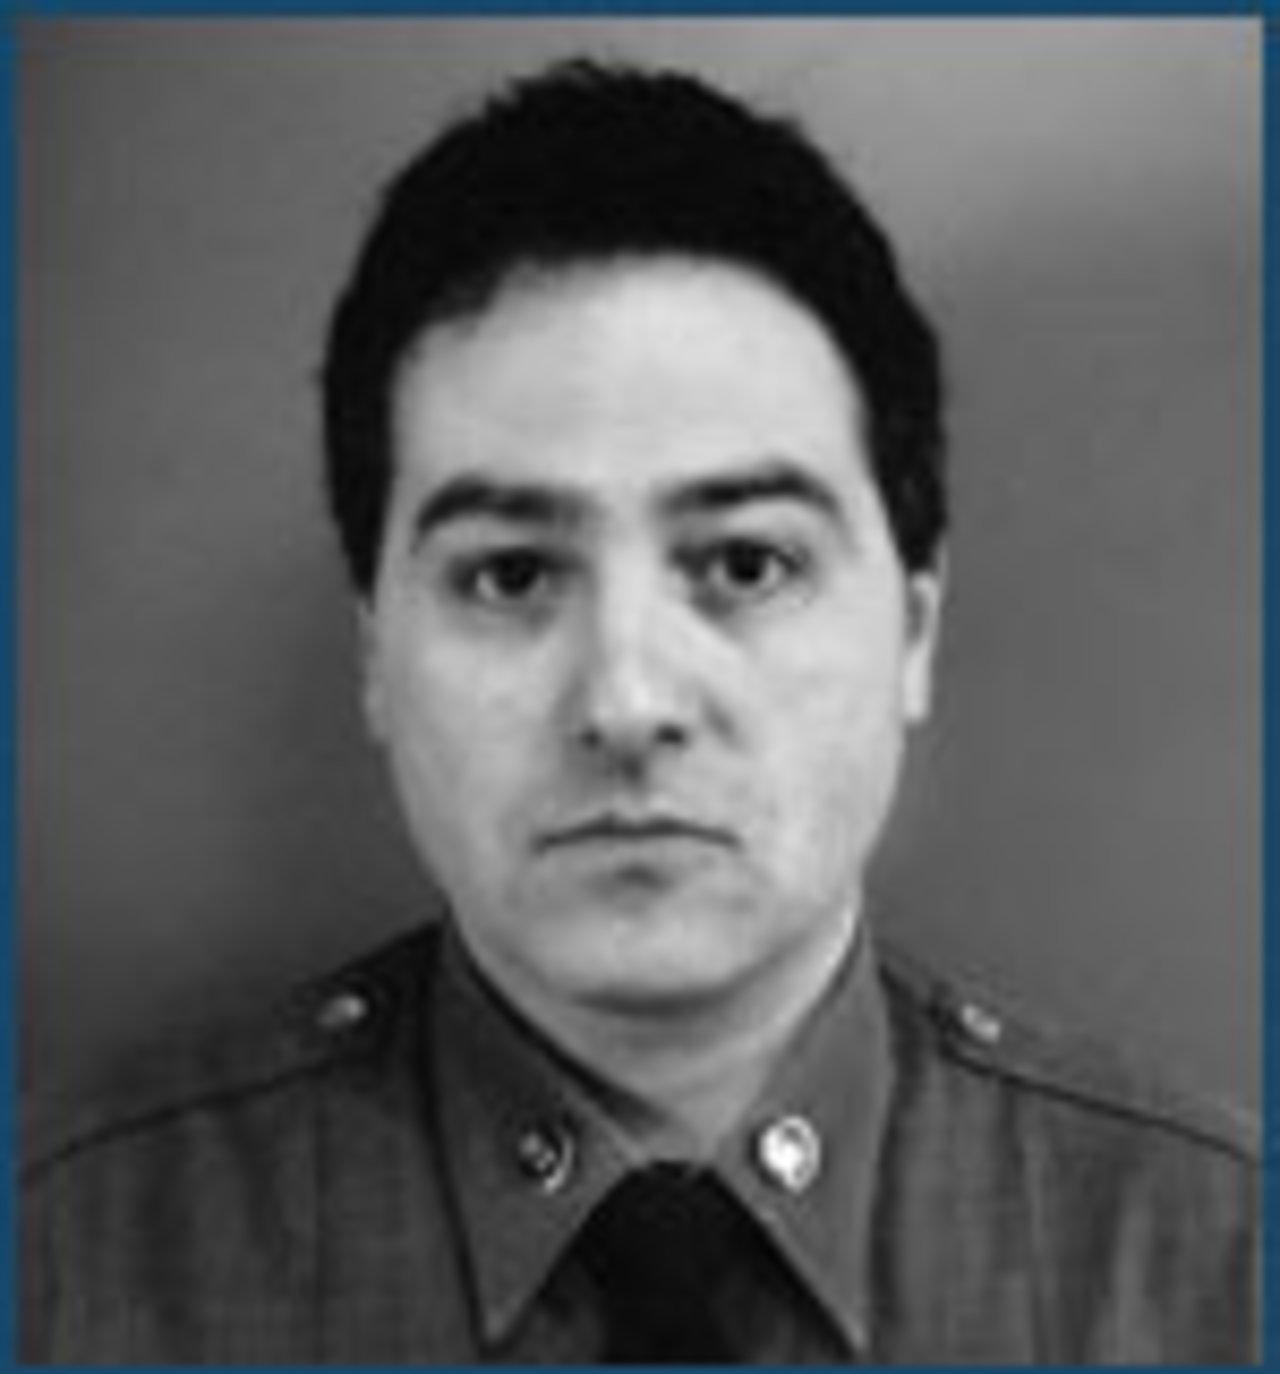 Trooper Kevin P. Dobson, 43, was killed on March 26, 2011 on Interstate 290 in the Town of Tonawanda, Erie County. While outside his patrol vehicle conducting a vehicle and traffic stop, Trooper Dobson was struck and killed by a passing motorist.  Trooper Dobson joined the New York State Police on April 30, 1997 and was assigned to the Interstate Patrol at SP Clarence.